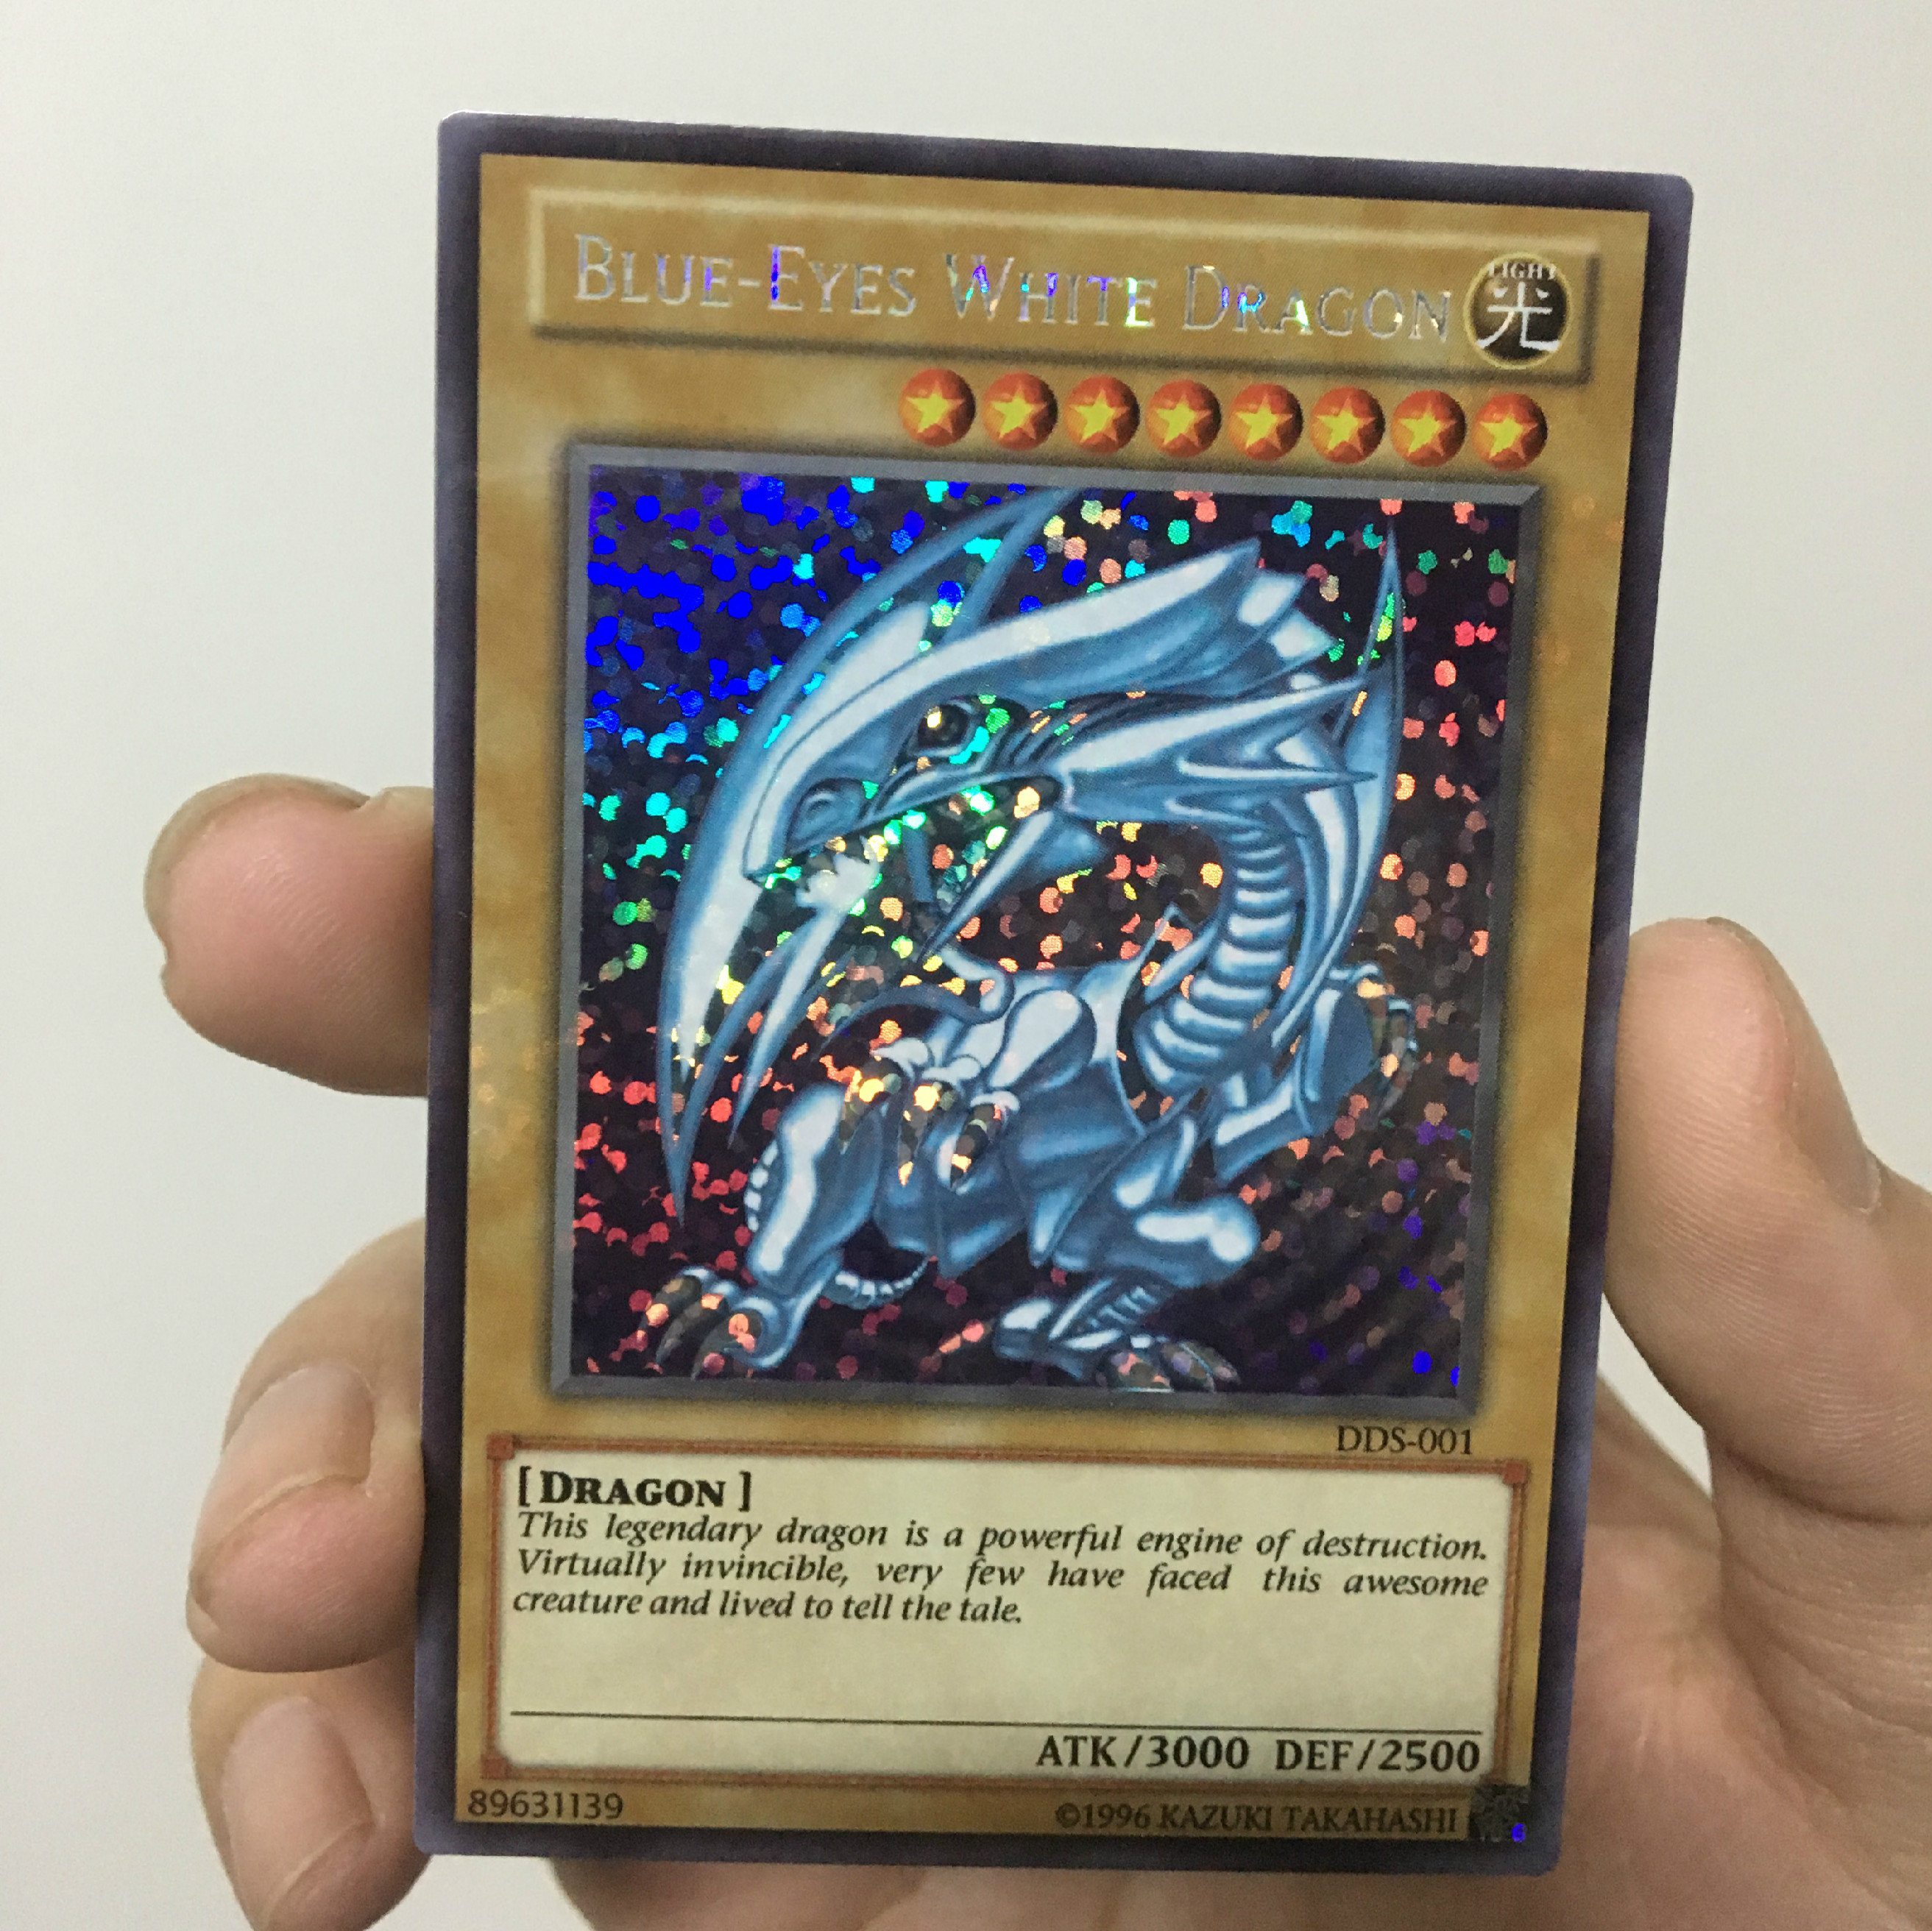 Yu Gi Oh Blue Eyes White Dragon English DDS-001 DIY Colorful Toys Hobbies Hobby Collectibles Game Collection Anime Cards